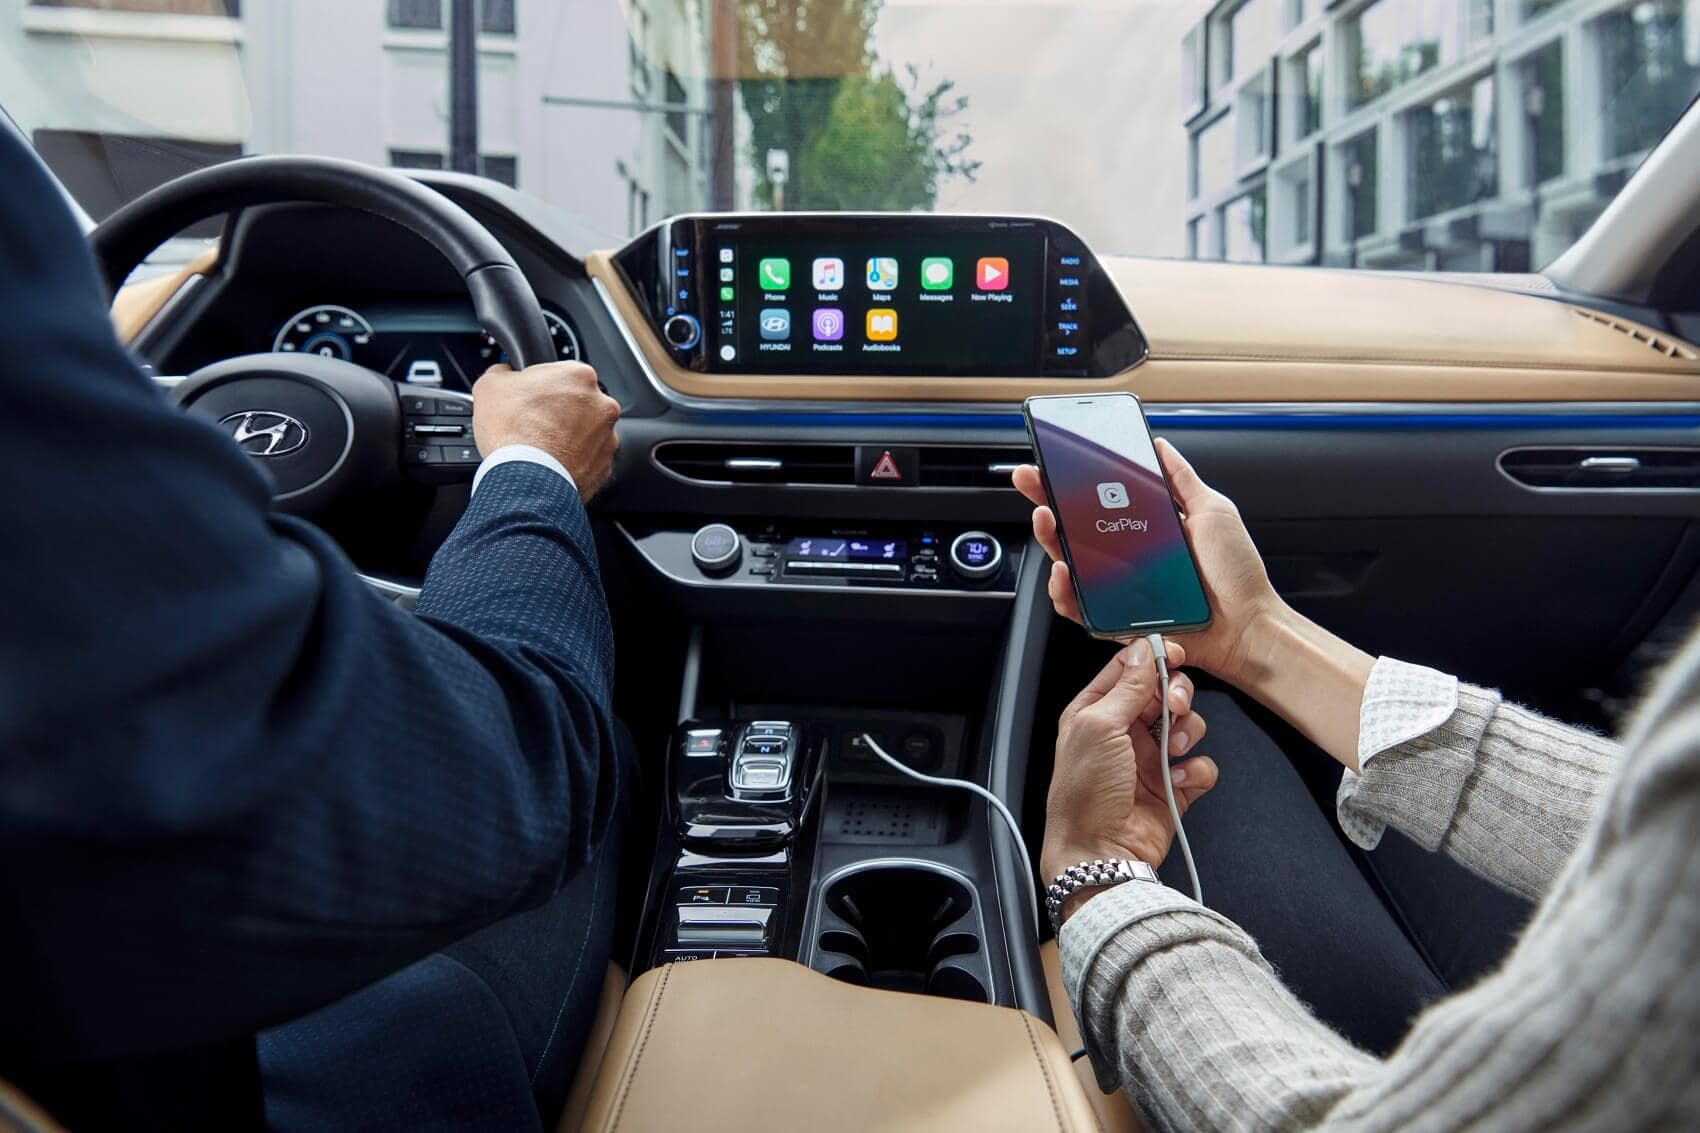 Hyundai Sonata Interior with Apple CarPlay®